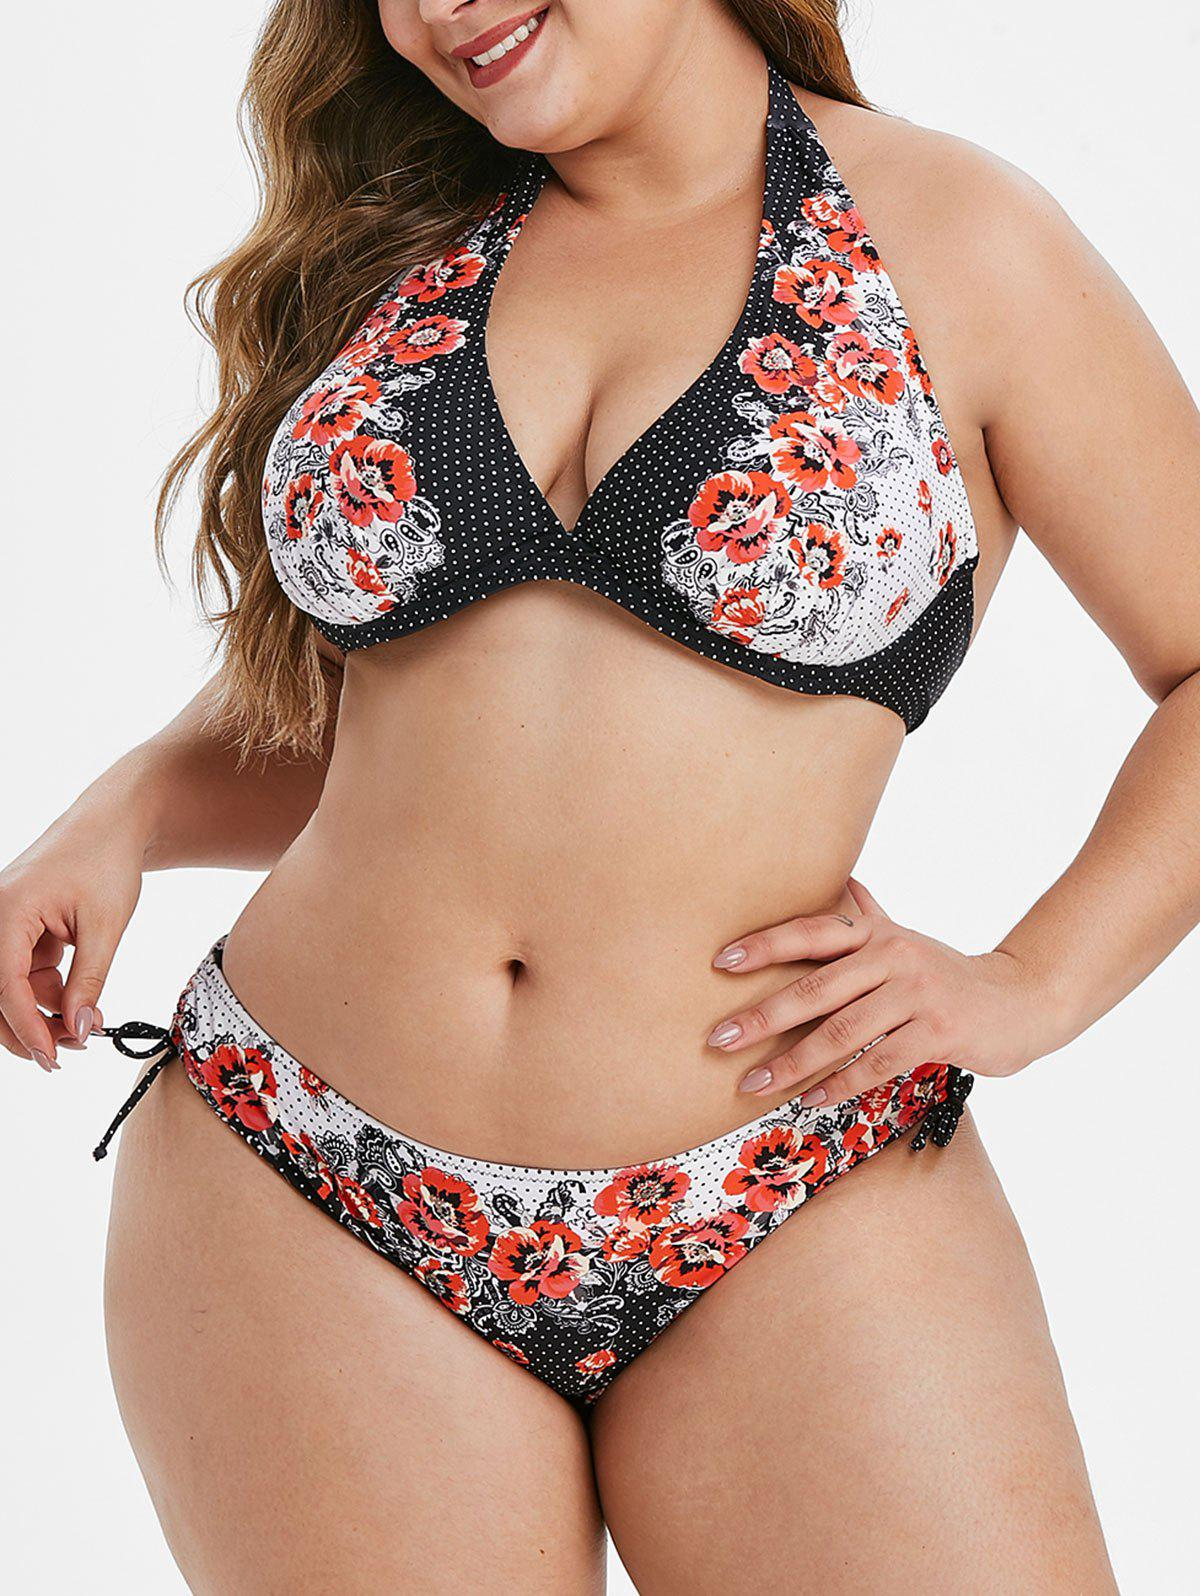 Halter Floral Polka Dot Underwire Plus Size Bikini Swimsuit - BLACK L